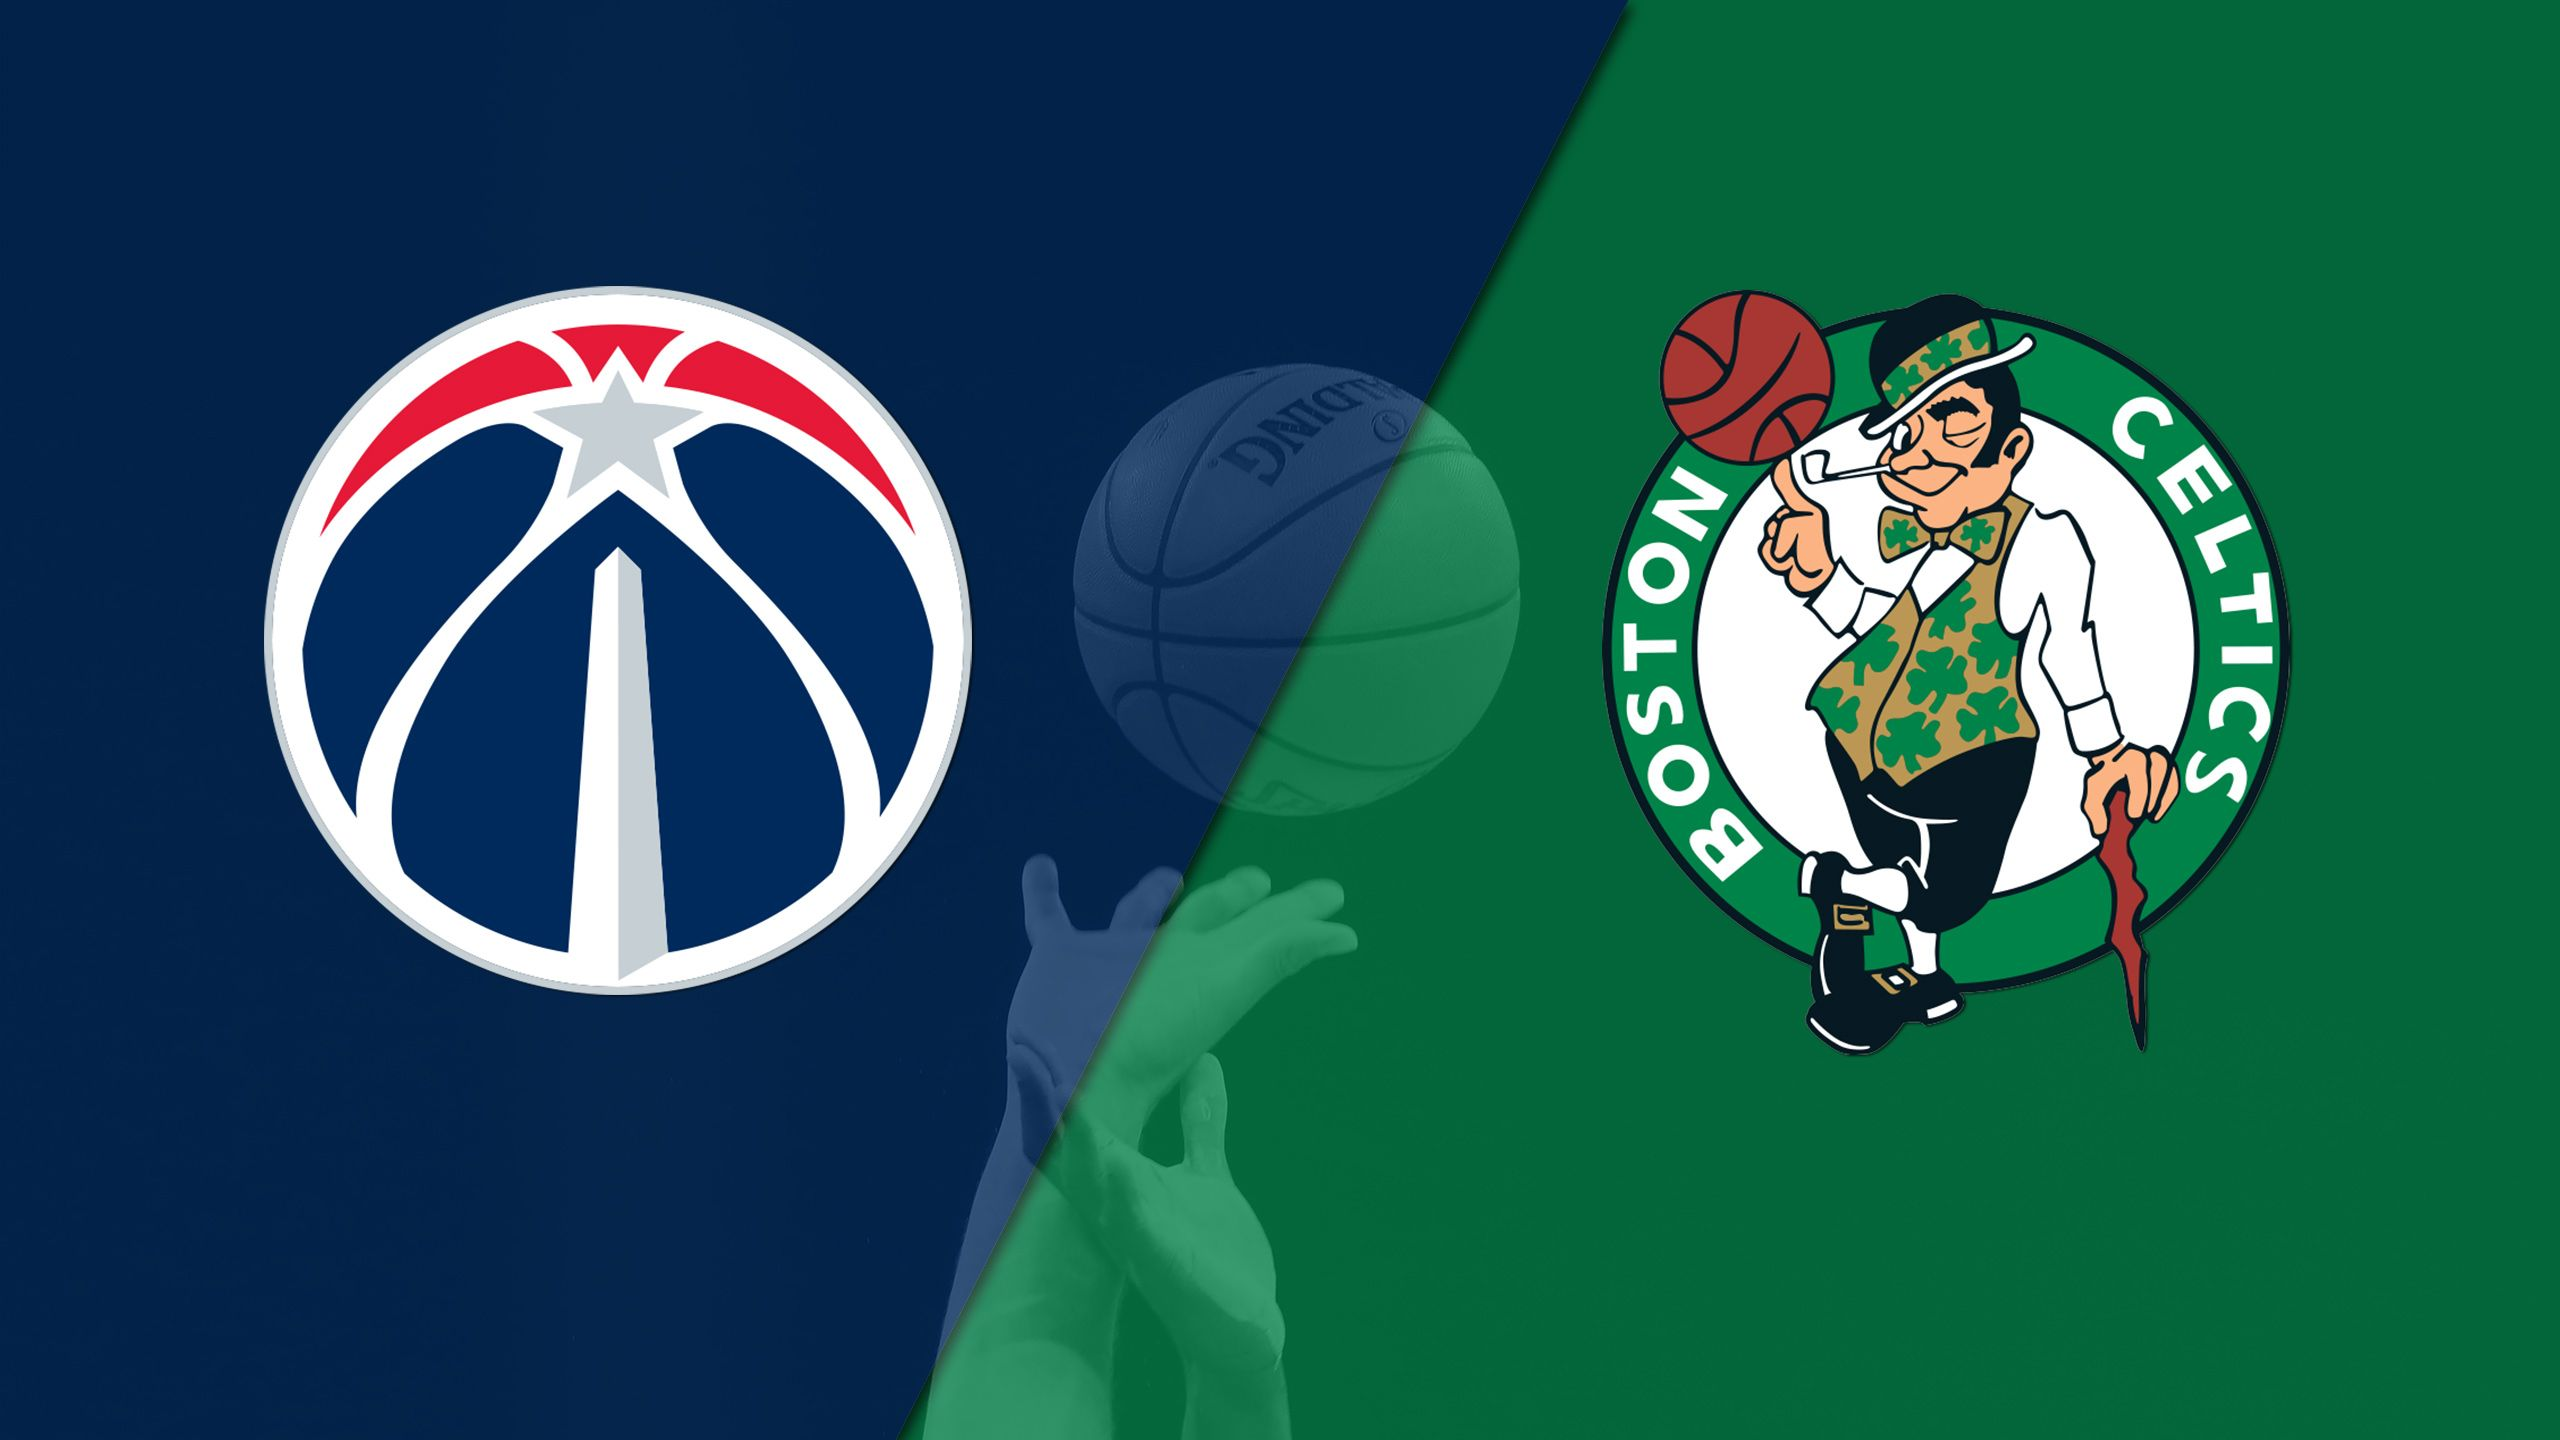 Washington Wizards vs. Boston Celtics (Conference Semifinal, Game 1)